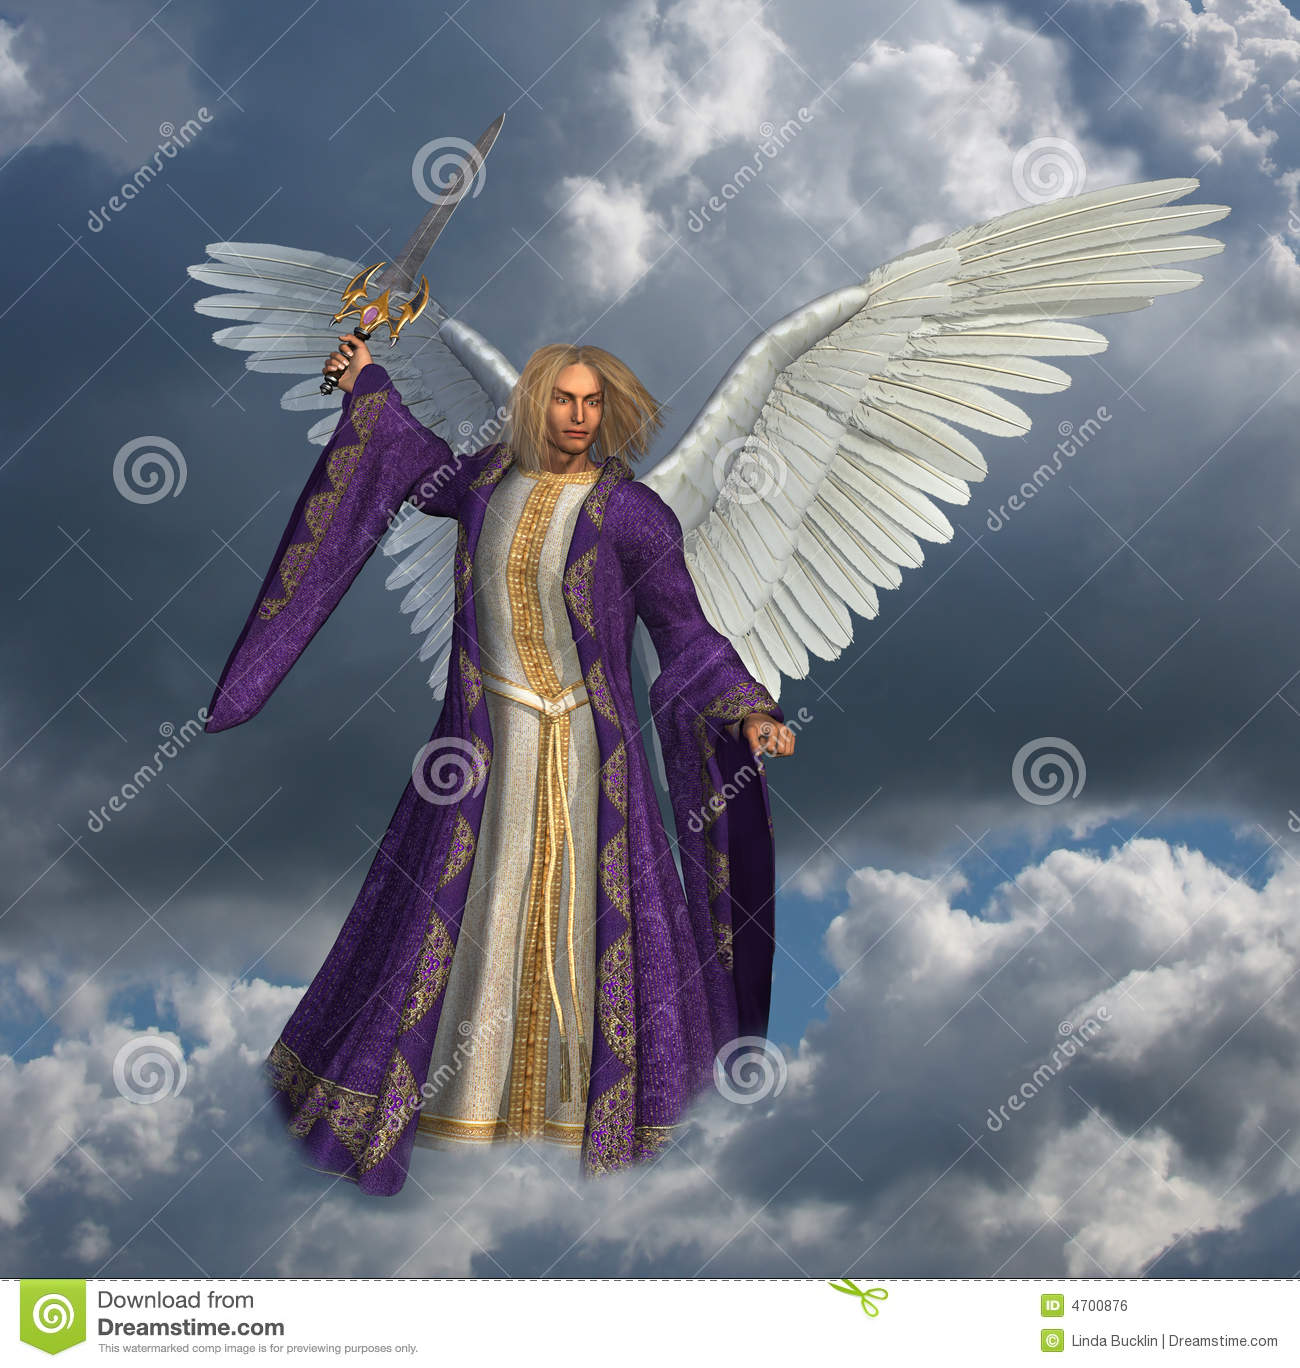 Archangel Micheal With Sky 2 Royalty Free Stock Image